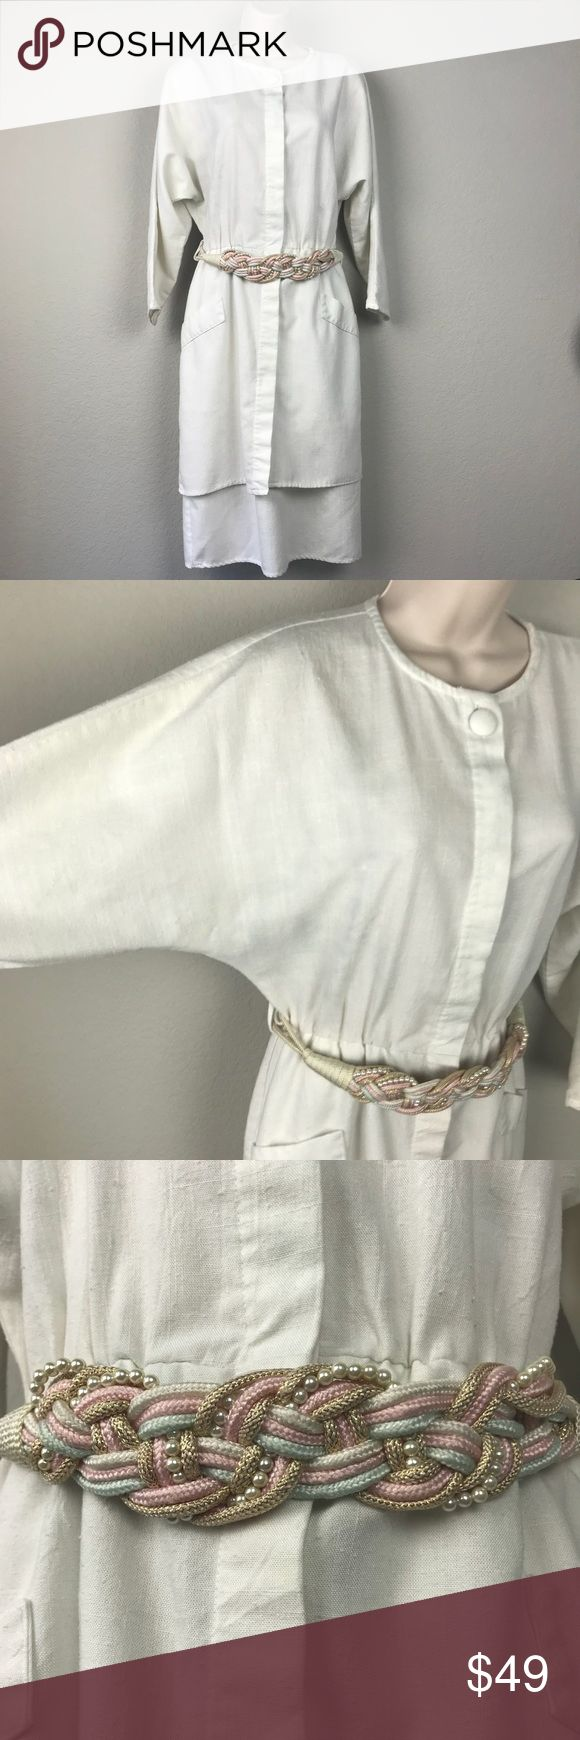 VTG 80s Byer Too Slub White Belted Midi Dress Vintage 1980s rayon poly blend slub knit (kind of a thick almost linen feel) off white almost white dolman sleeved belted dress with hidden buttons down front that go from chest to outer double skirt (see pics of inside skirt layer) , fabric covered button at neck and gorgeous pearl and ribbon braided belt with gold hook closure. Excellent vintage condition, no holes tears or stains. Made in the USA. Size 9 fits like modern M. Earthquake boho…